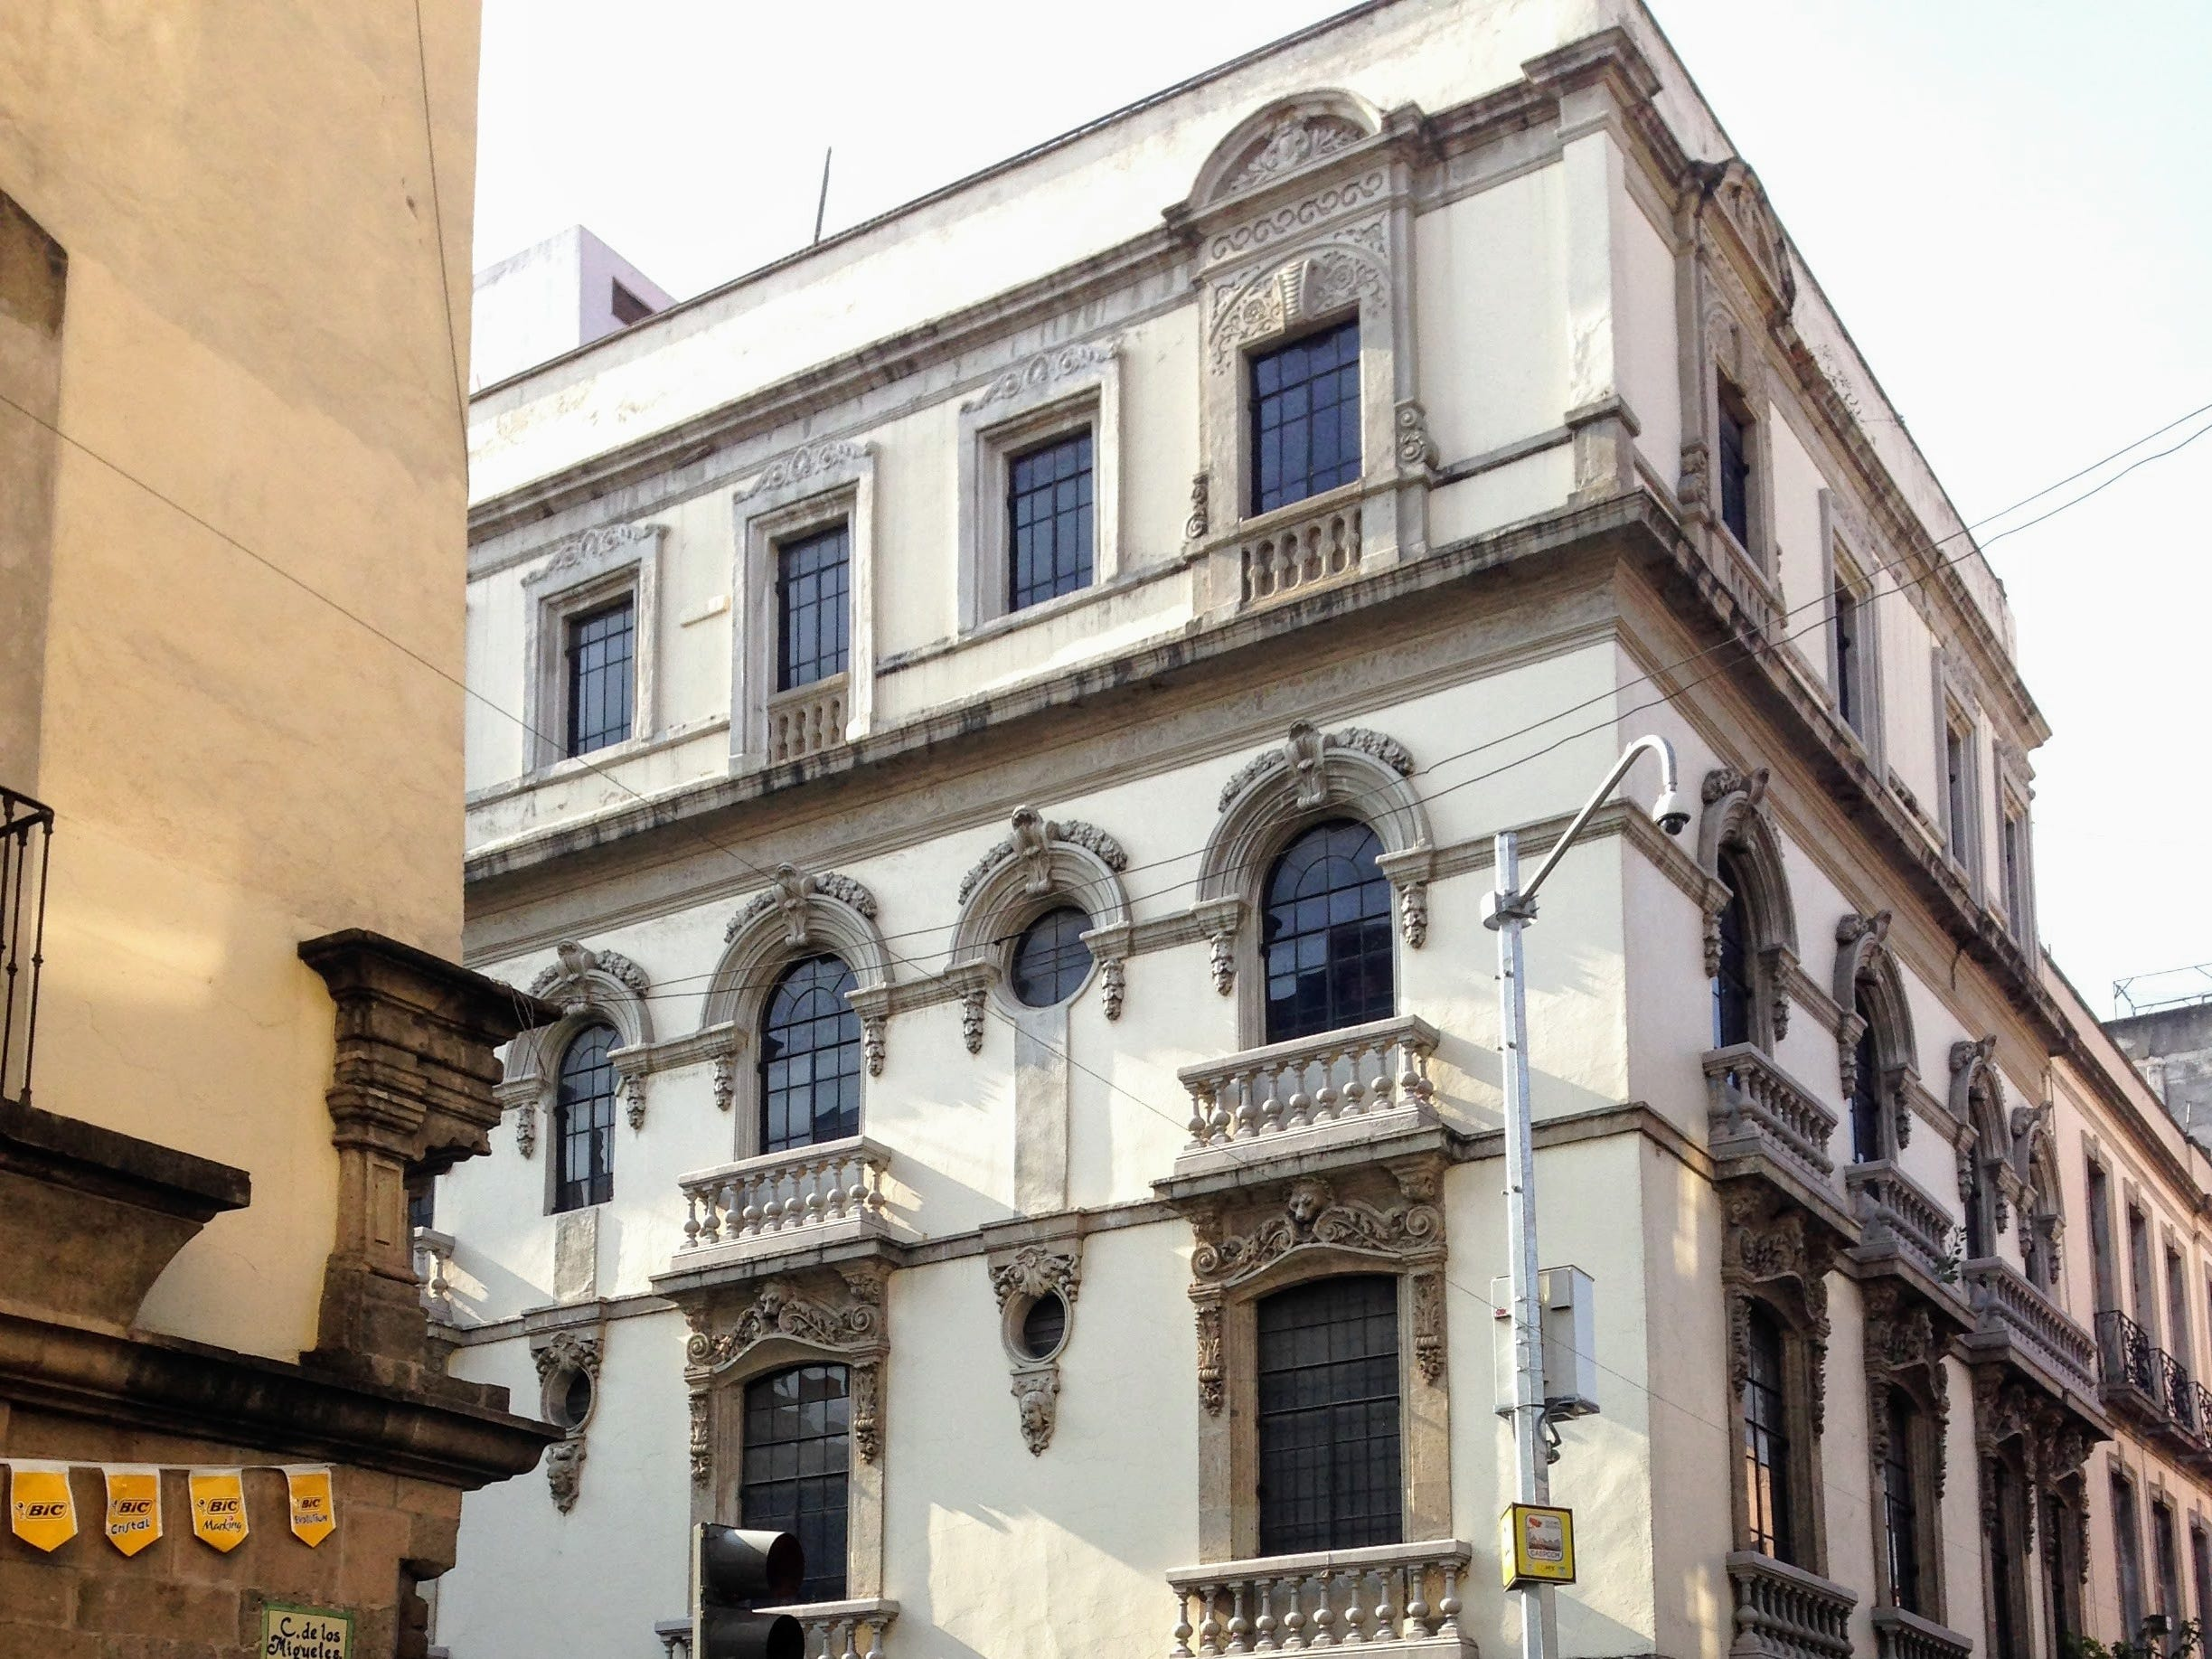 Mexico City's Centro Histórico is full of buildings that span the centuries of the city's history, from the colonial period through today.